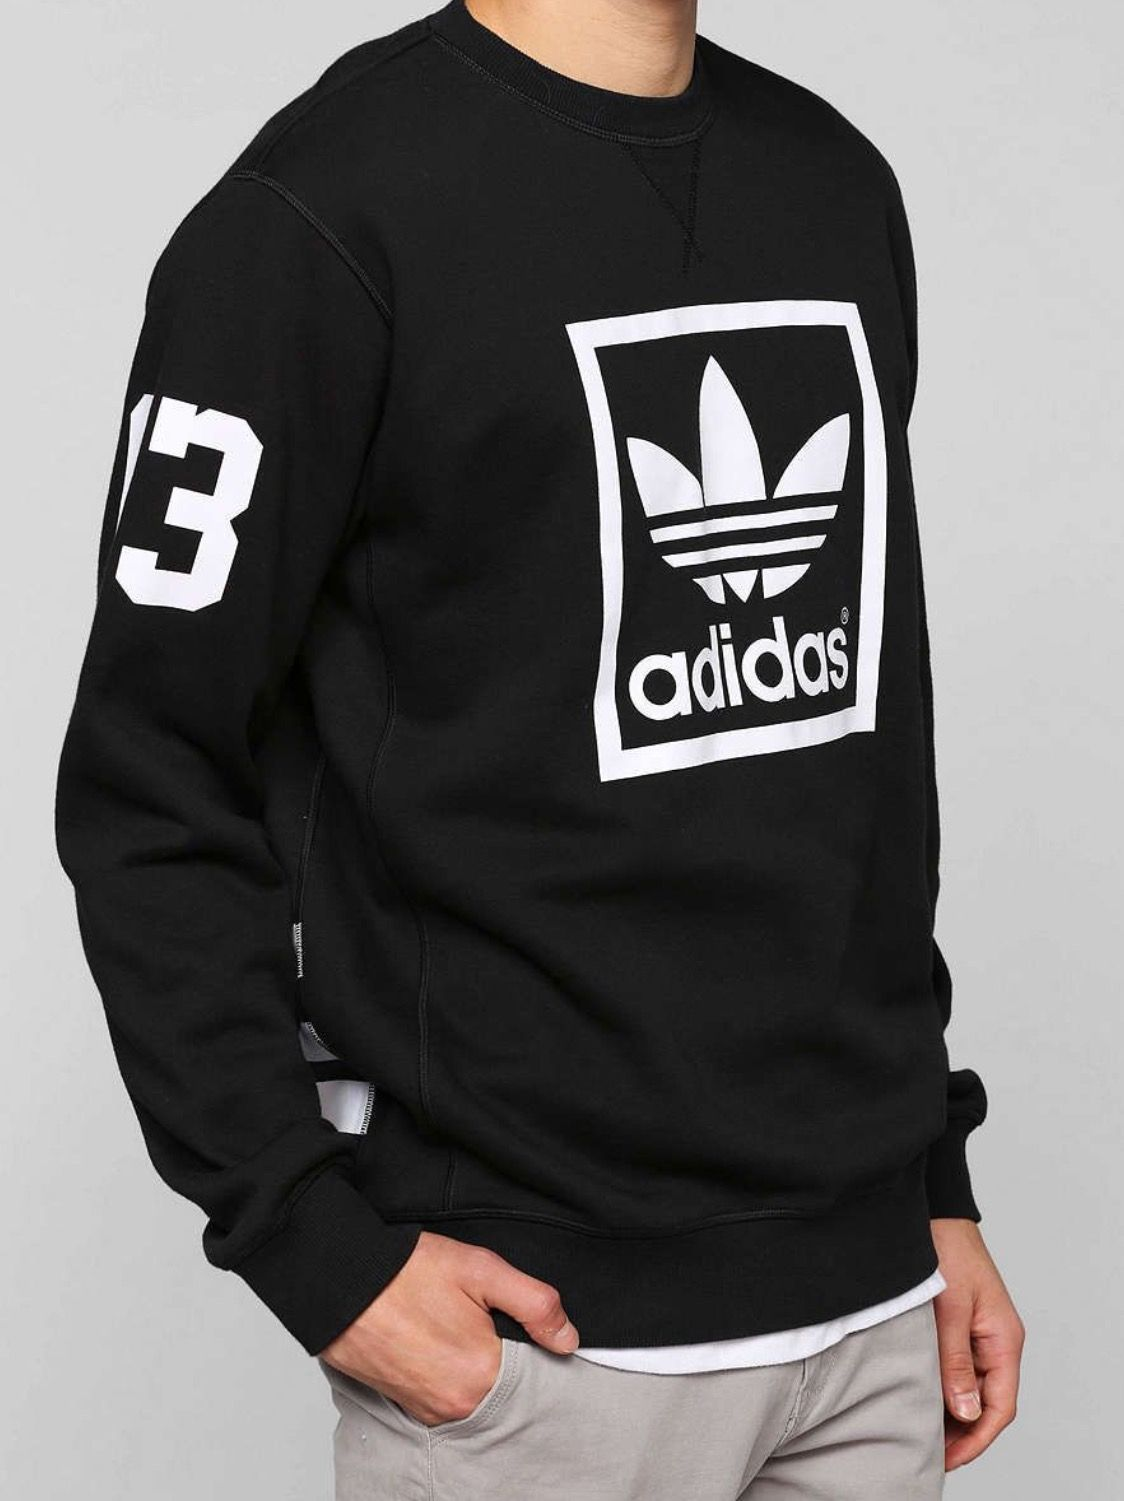 sports shoes 1c7e2 25c87 T-shirt Und Jeans, Adidas Jumper Mens, Adidas Sweaters, Capulet Clothing,